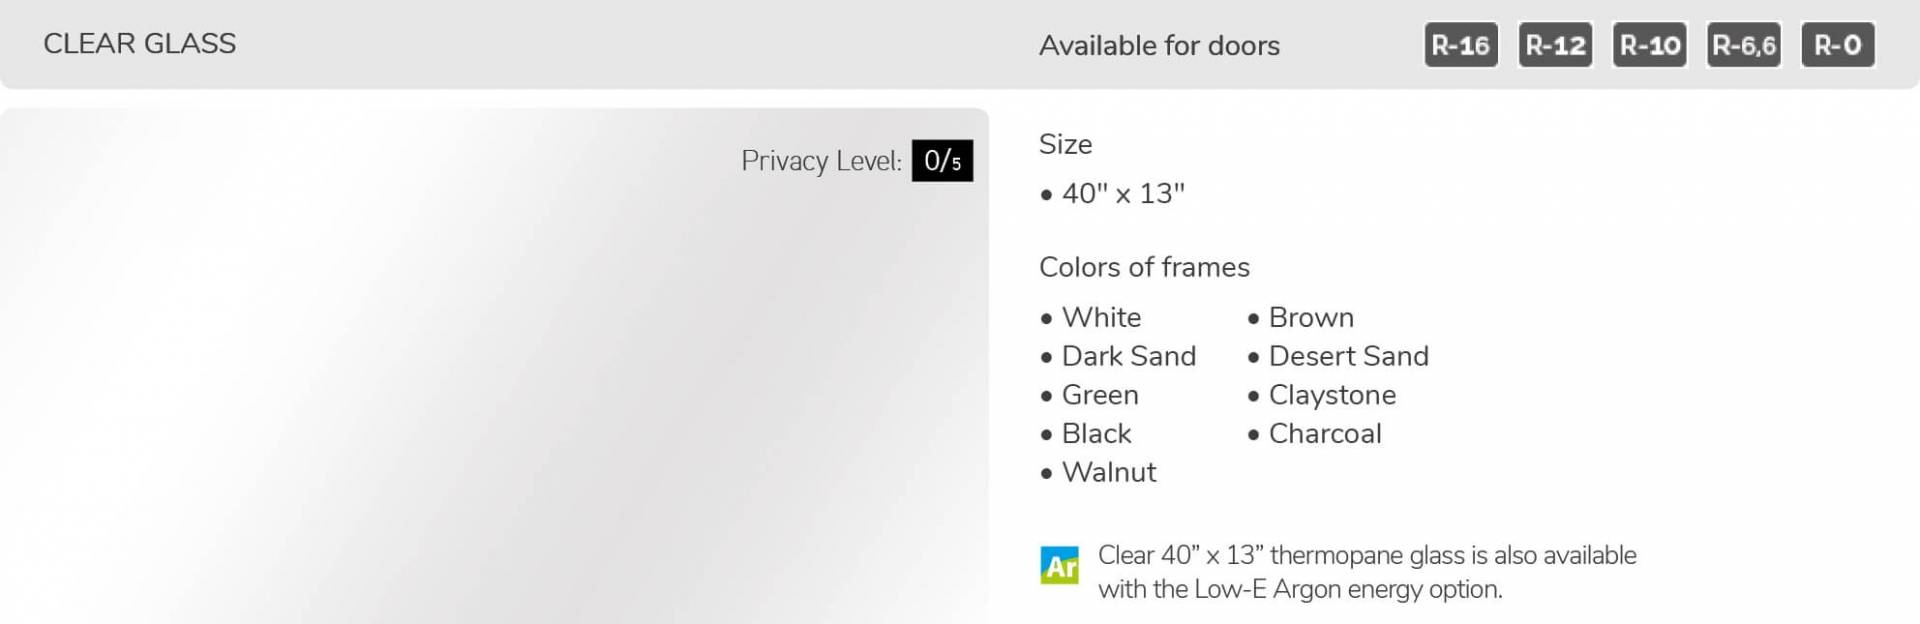 "Clear Glass, 40"" x 13"", available for doors R-16, R-12, R-10, R-6.6, R-0"